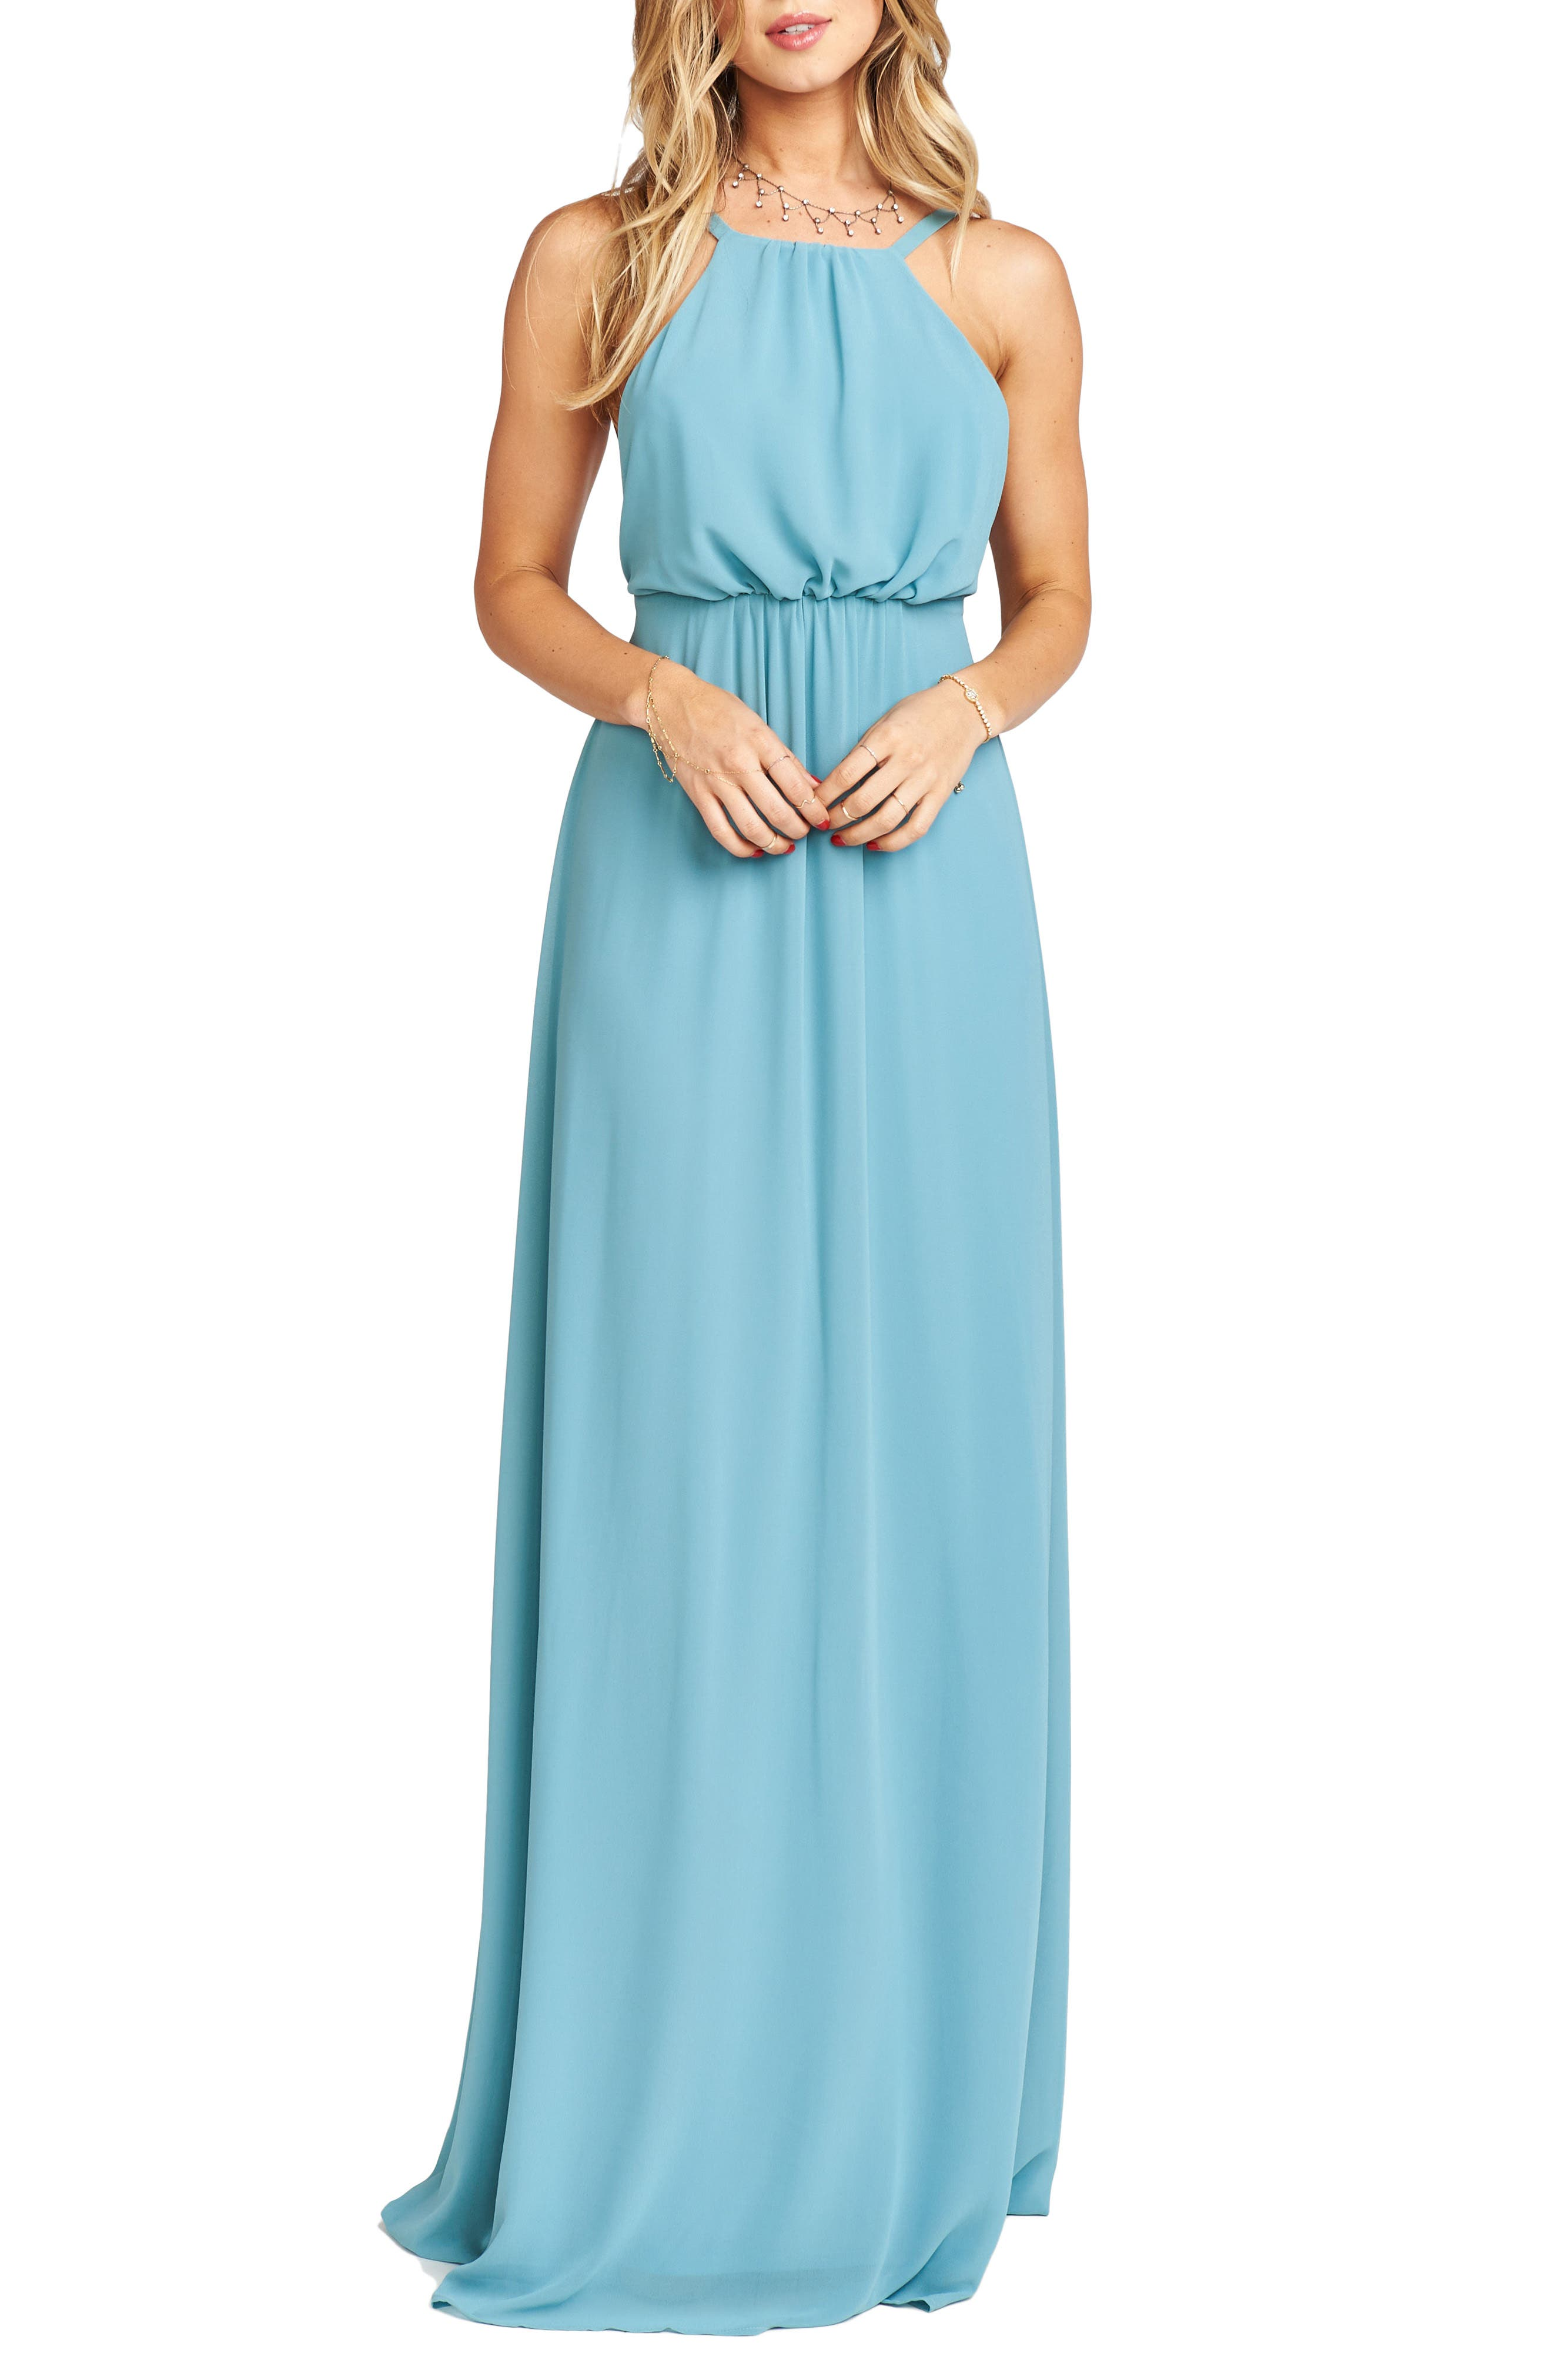 Amanda Open Back Blouson Gown,                             Alternate thumbnail 20, color,